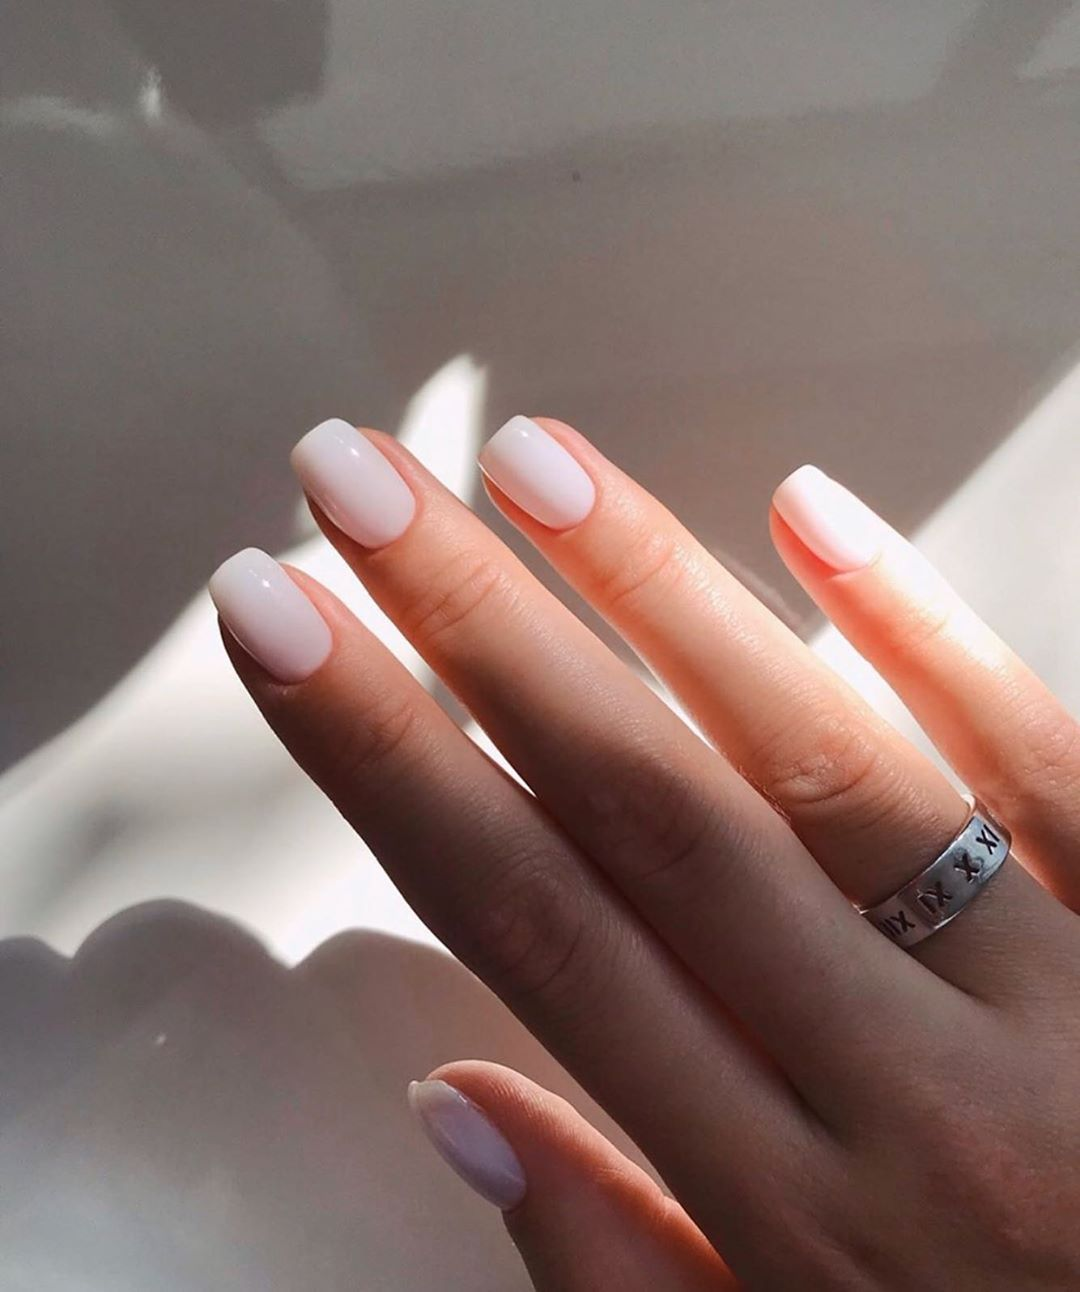 "���� ������� ���� on Instagram: ""Dreamy nails ️ Follow @glamourgoal for more! """